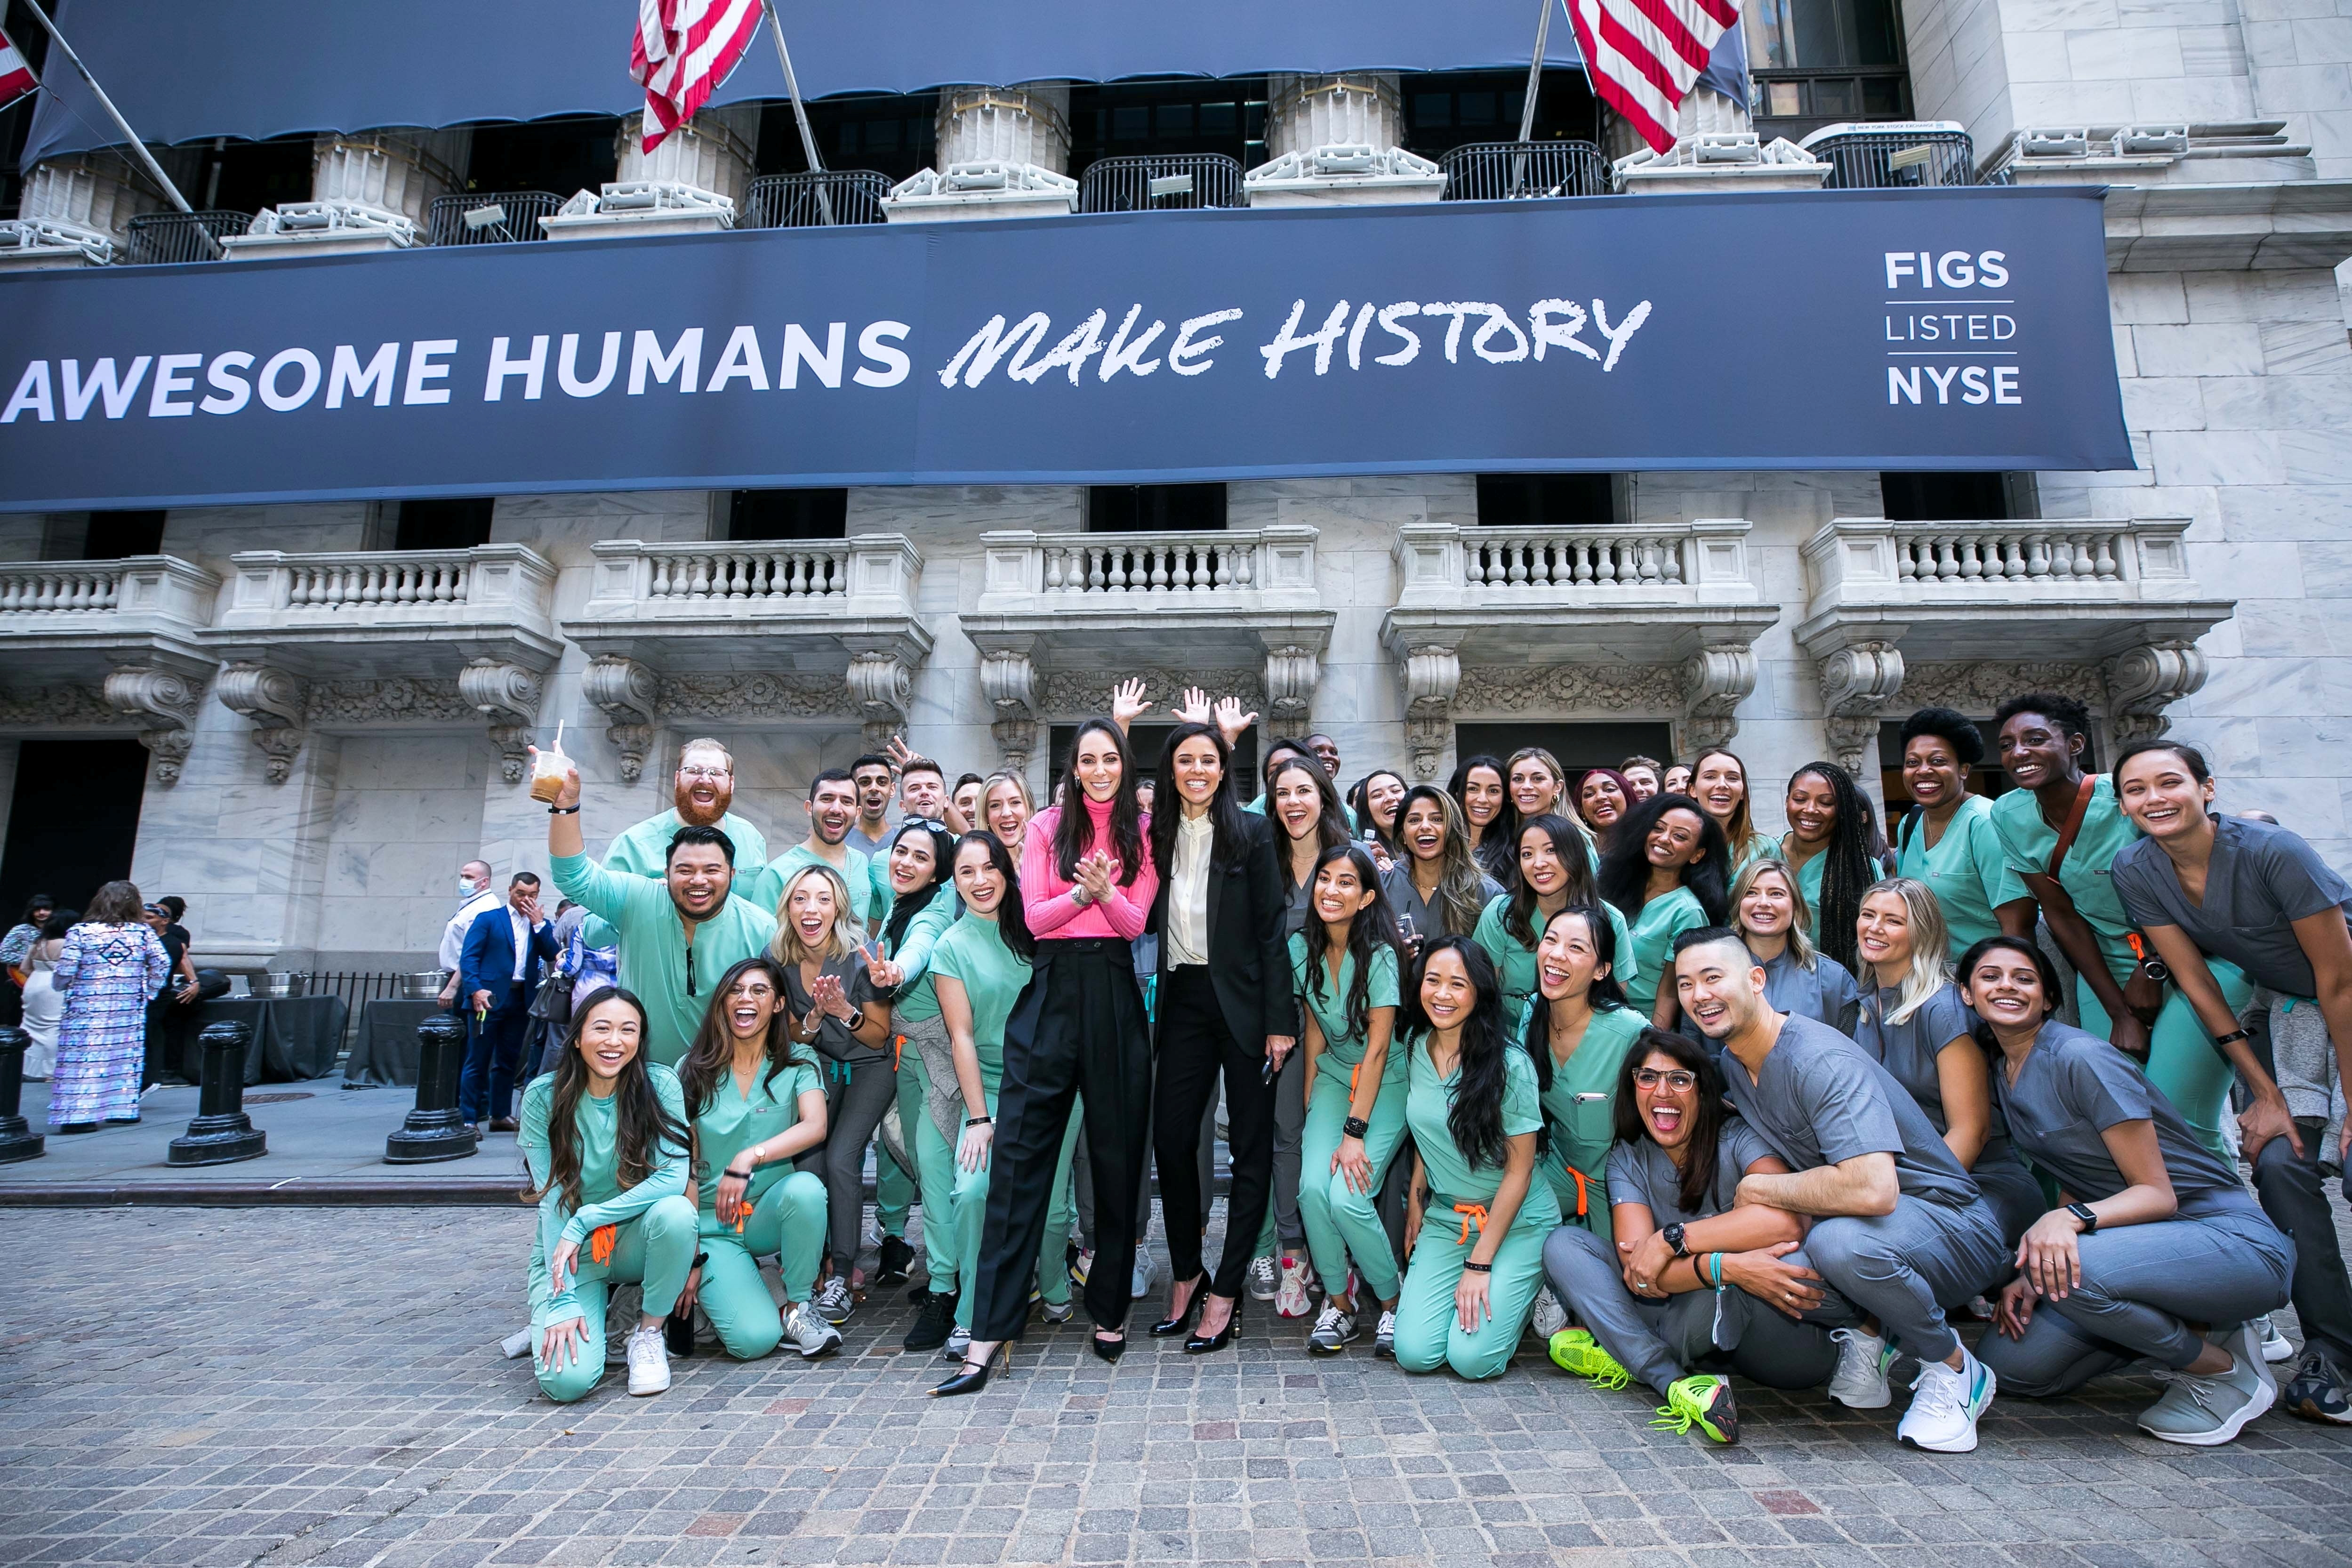 FIGS Inc co-founders Heather Hasson and Trina Spear arrive at the NYSE with FIGS ambassadors to celebrate the company's initial public offering in New York City, U.S., May 27, 2021. NYSE/Handout via REUTERS